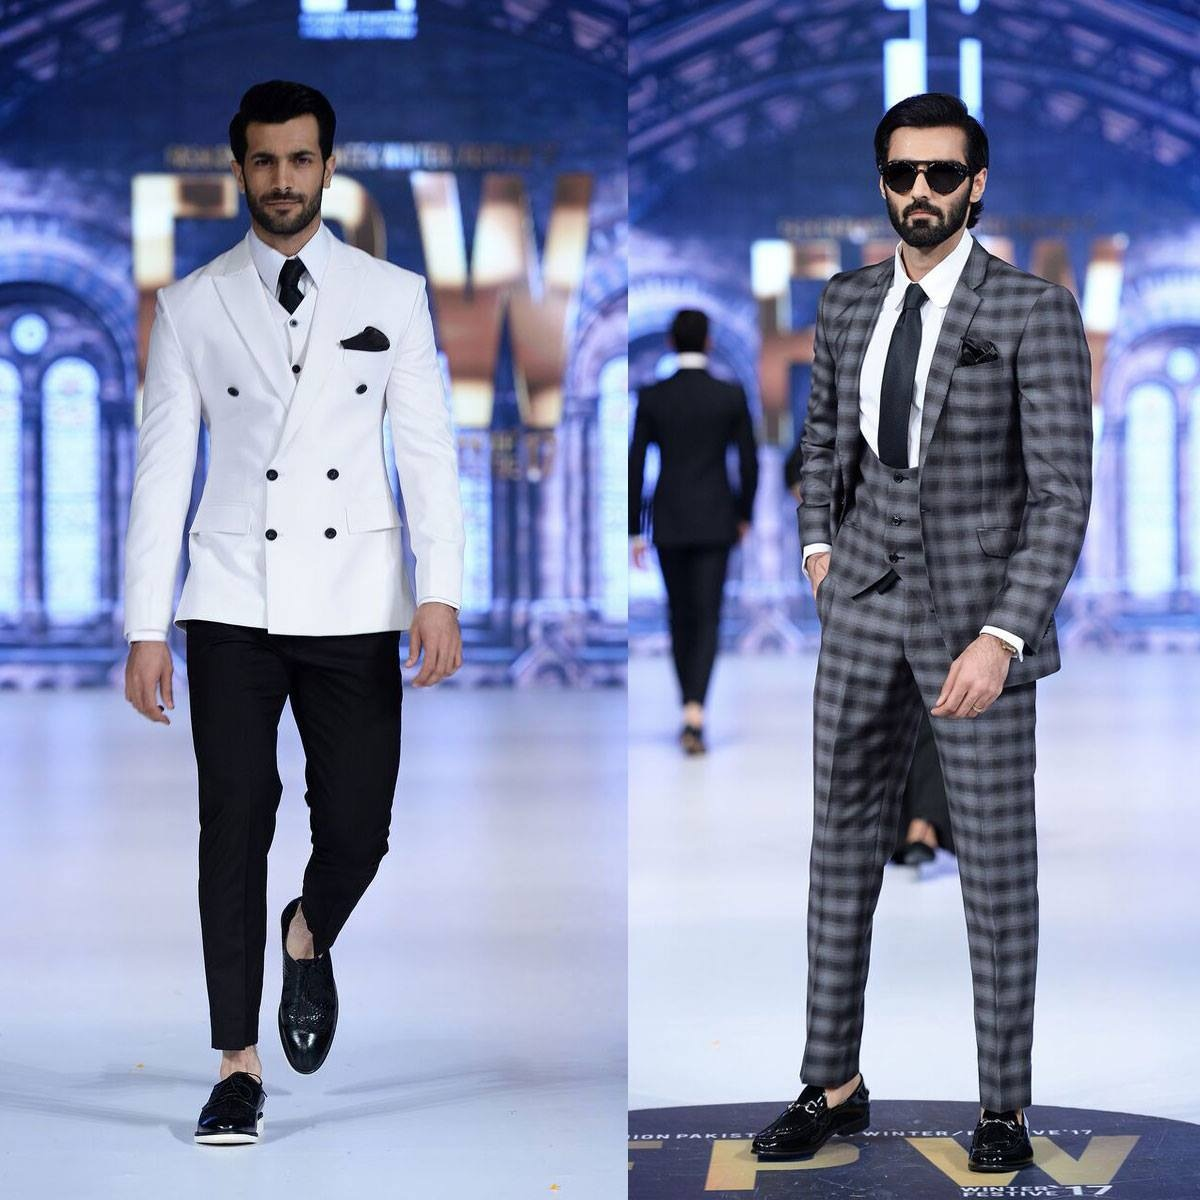 Emraan Rajput's suits were very well-cut